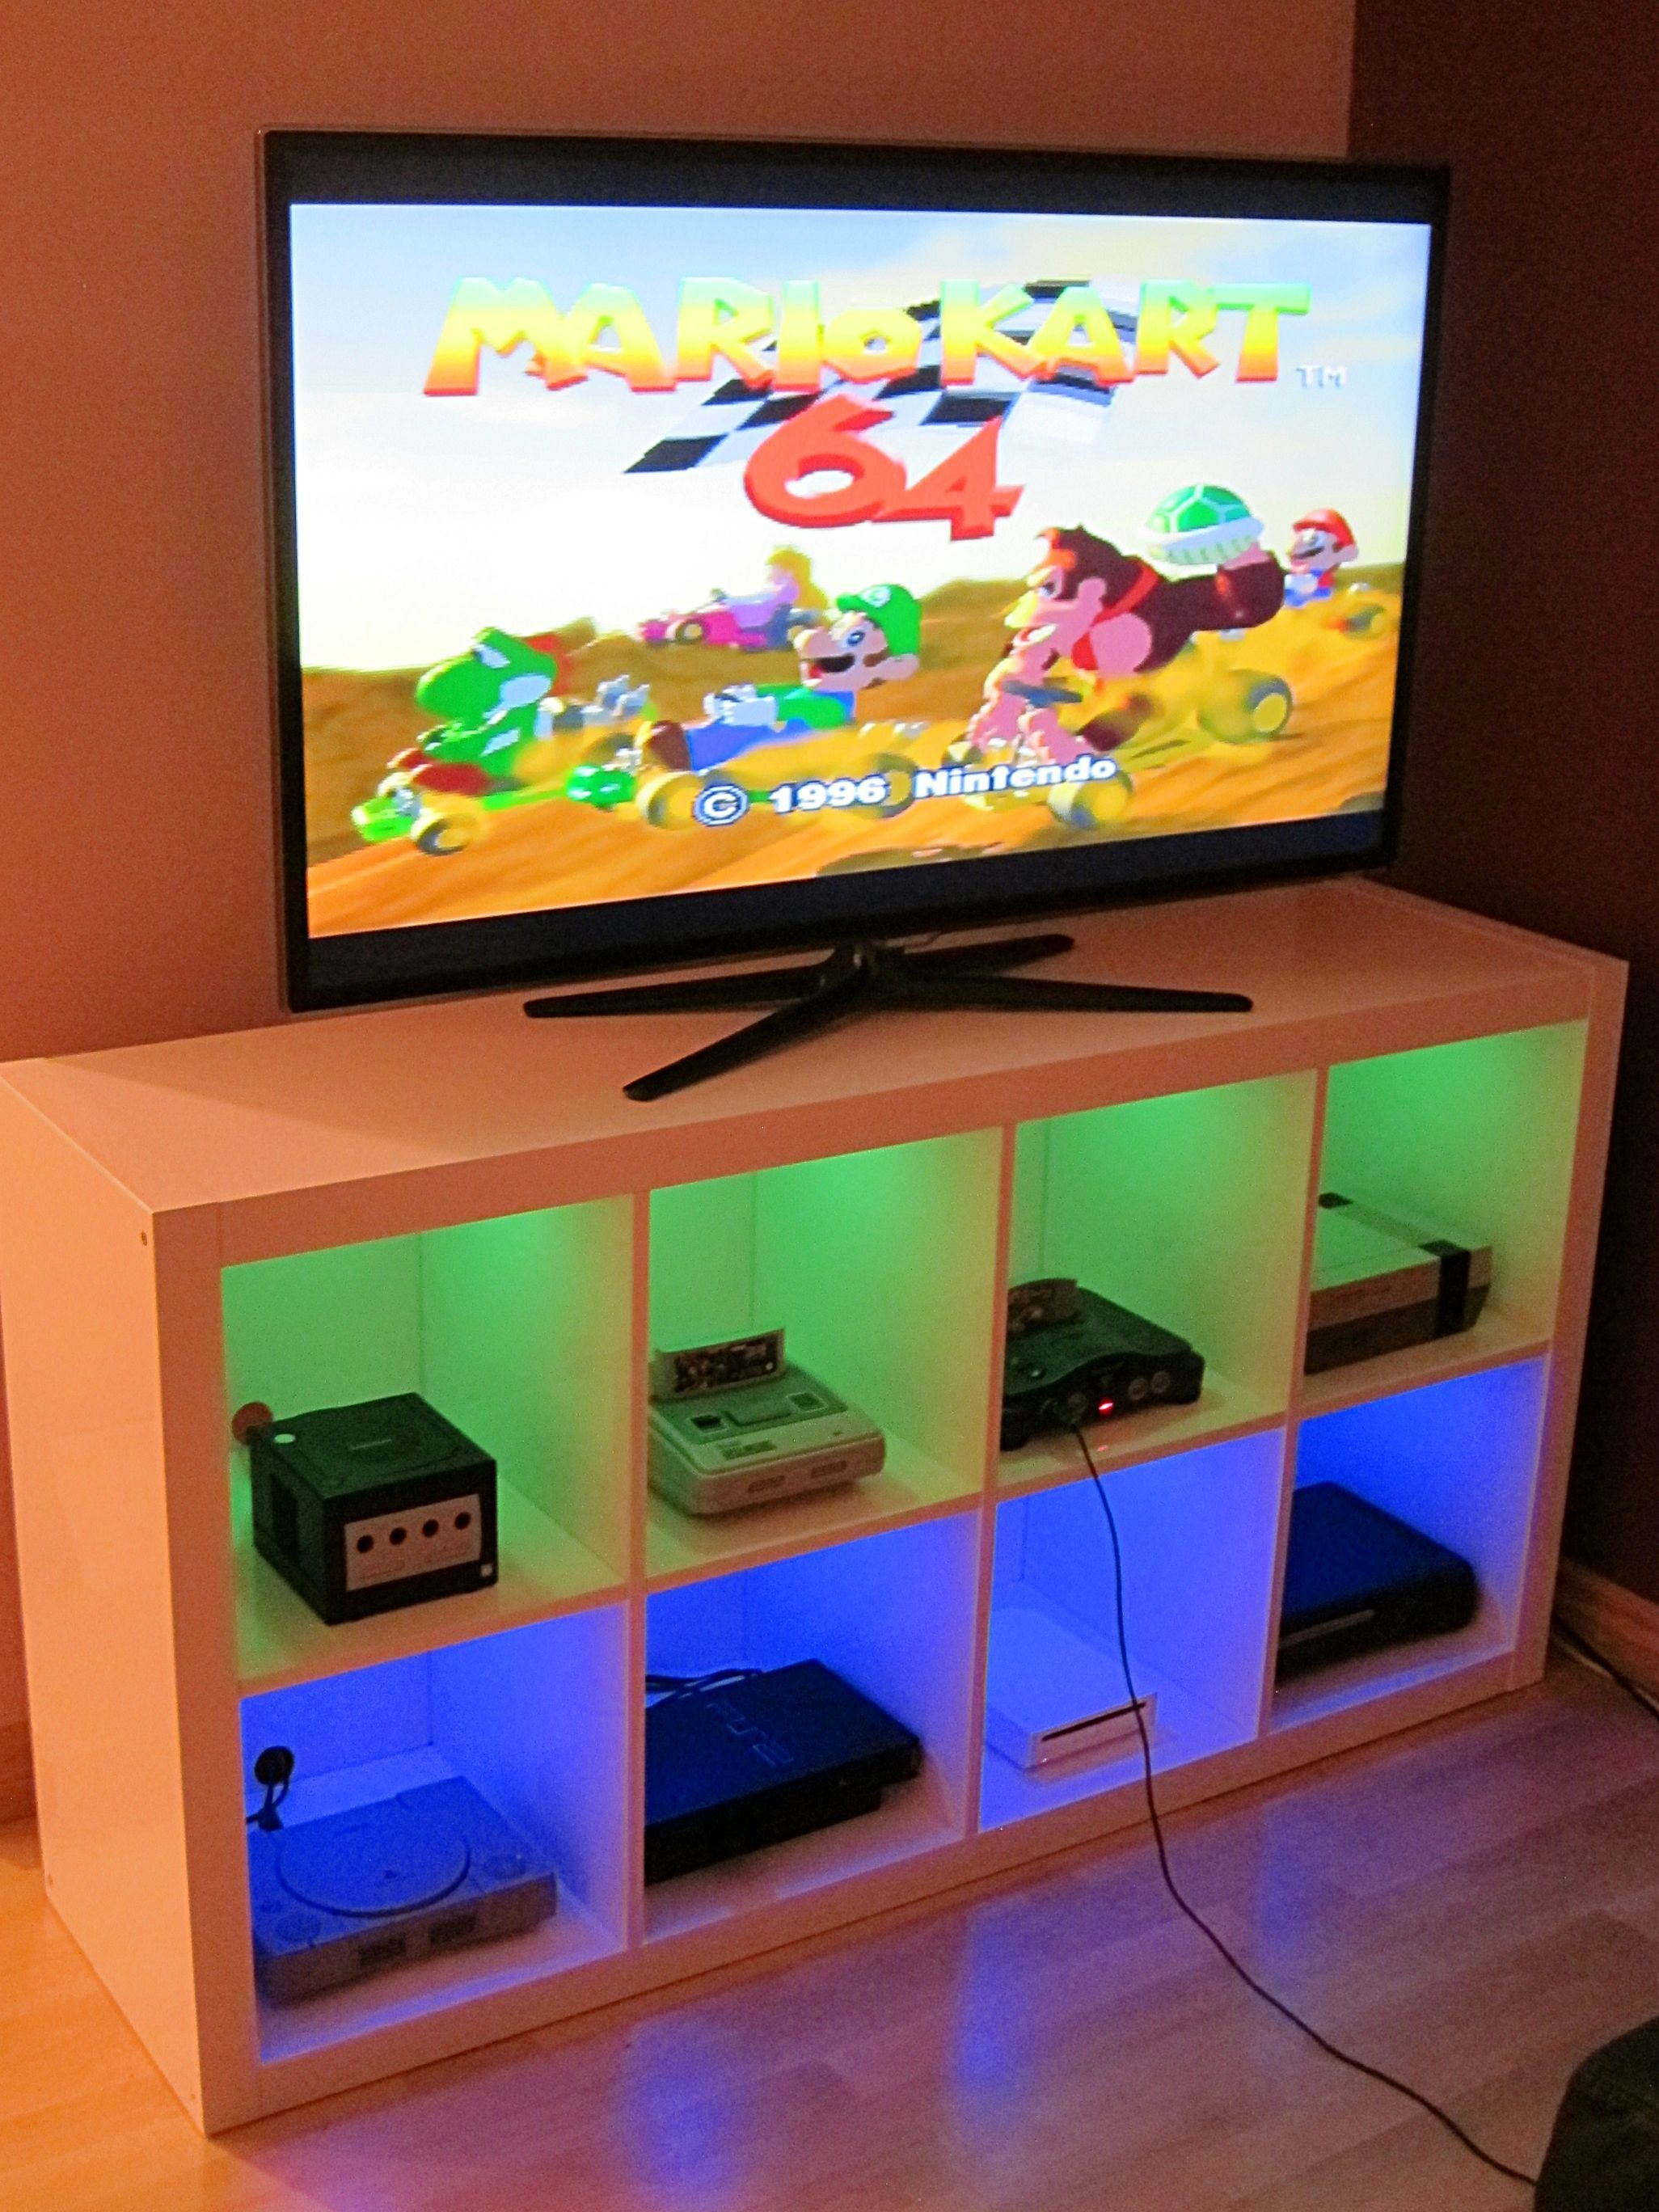 5 Most Recommended Video Game Room Ideas -  #homedecor #video #game #room #videogameroom #gameroom #modern #ideas #inspiration #light #BattleStation – #GamingOffice #garagemancaves